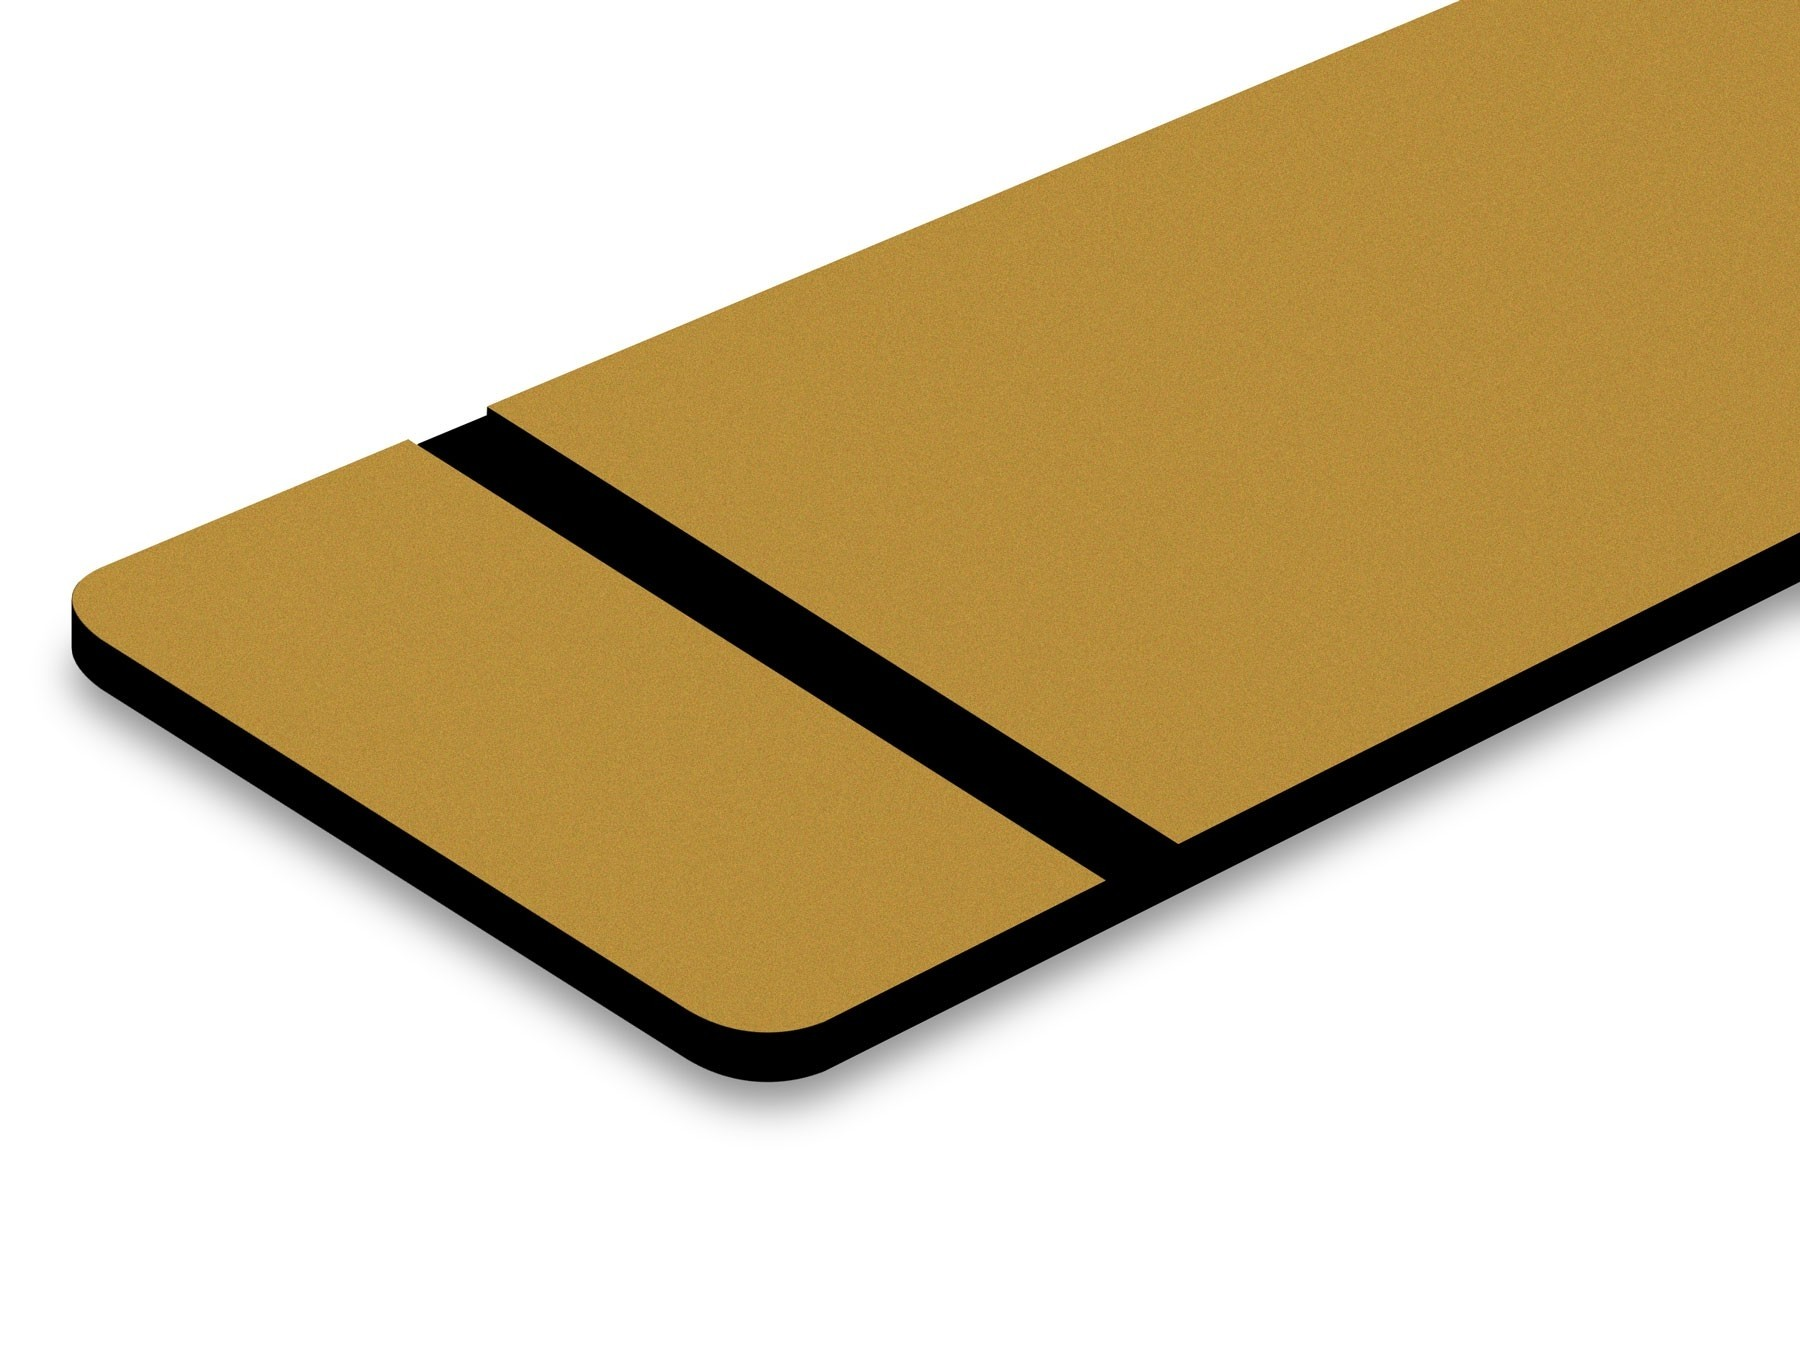 TroPly Metallic, Smooth Gold/Black, 2ply, 1.6 mm